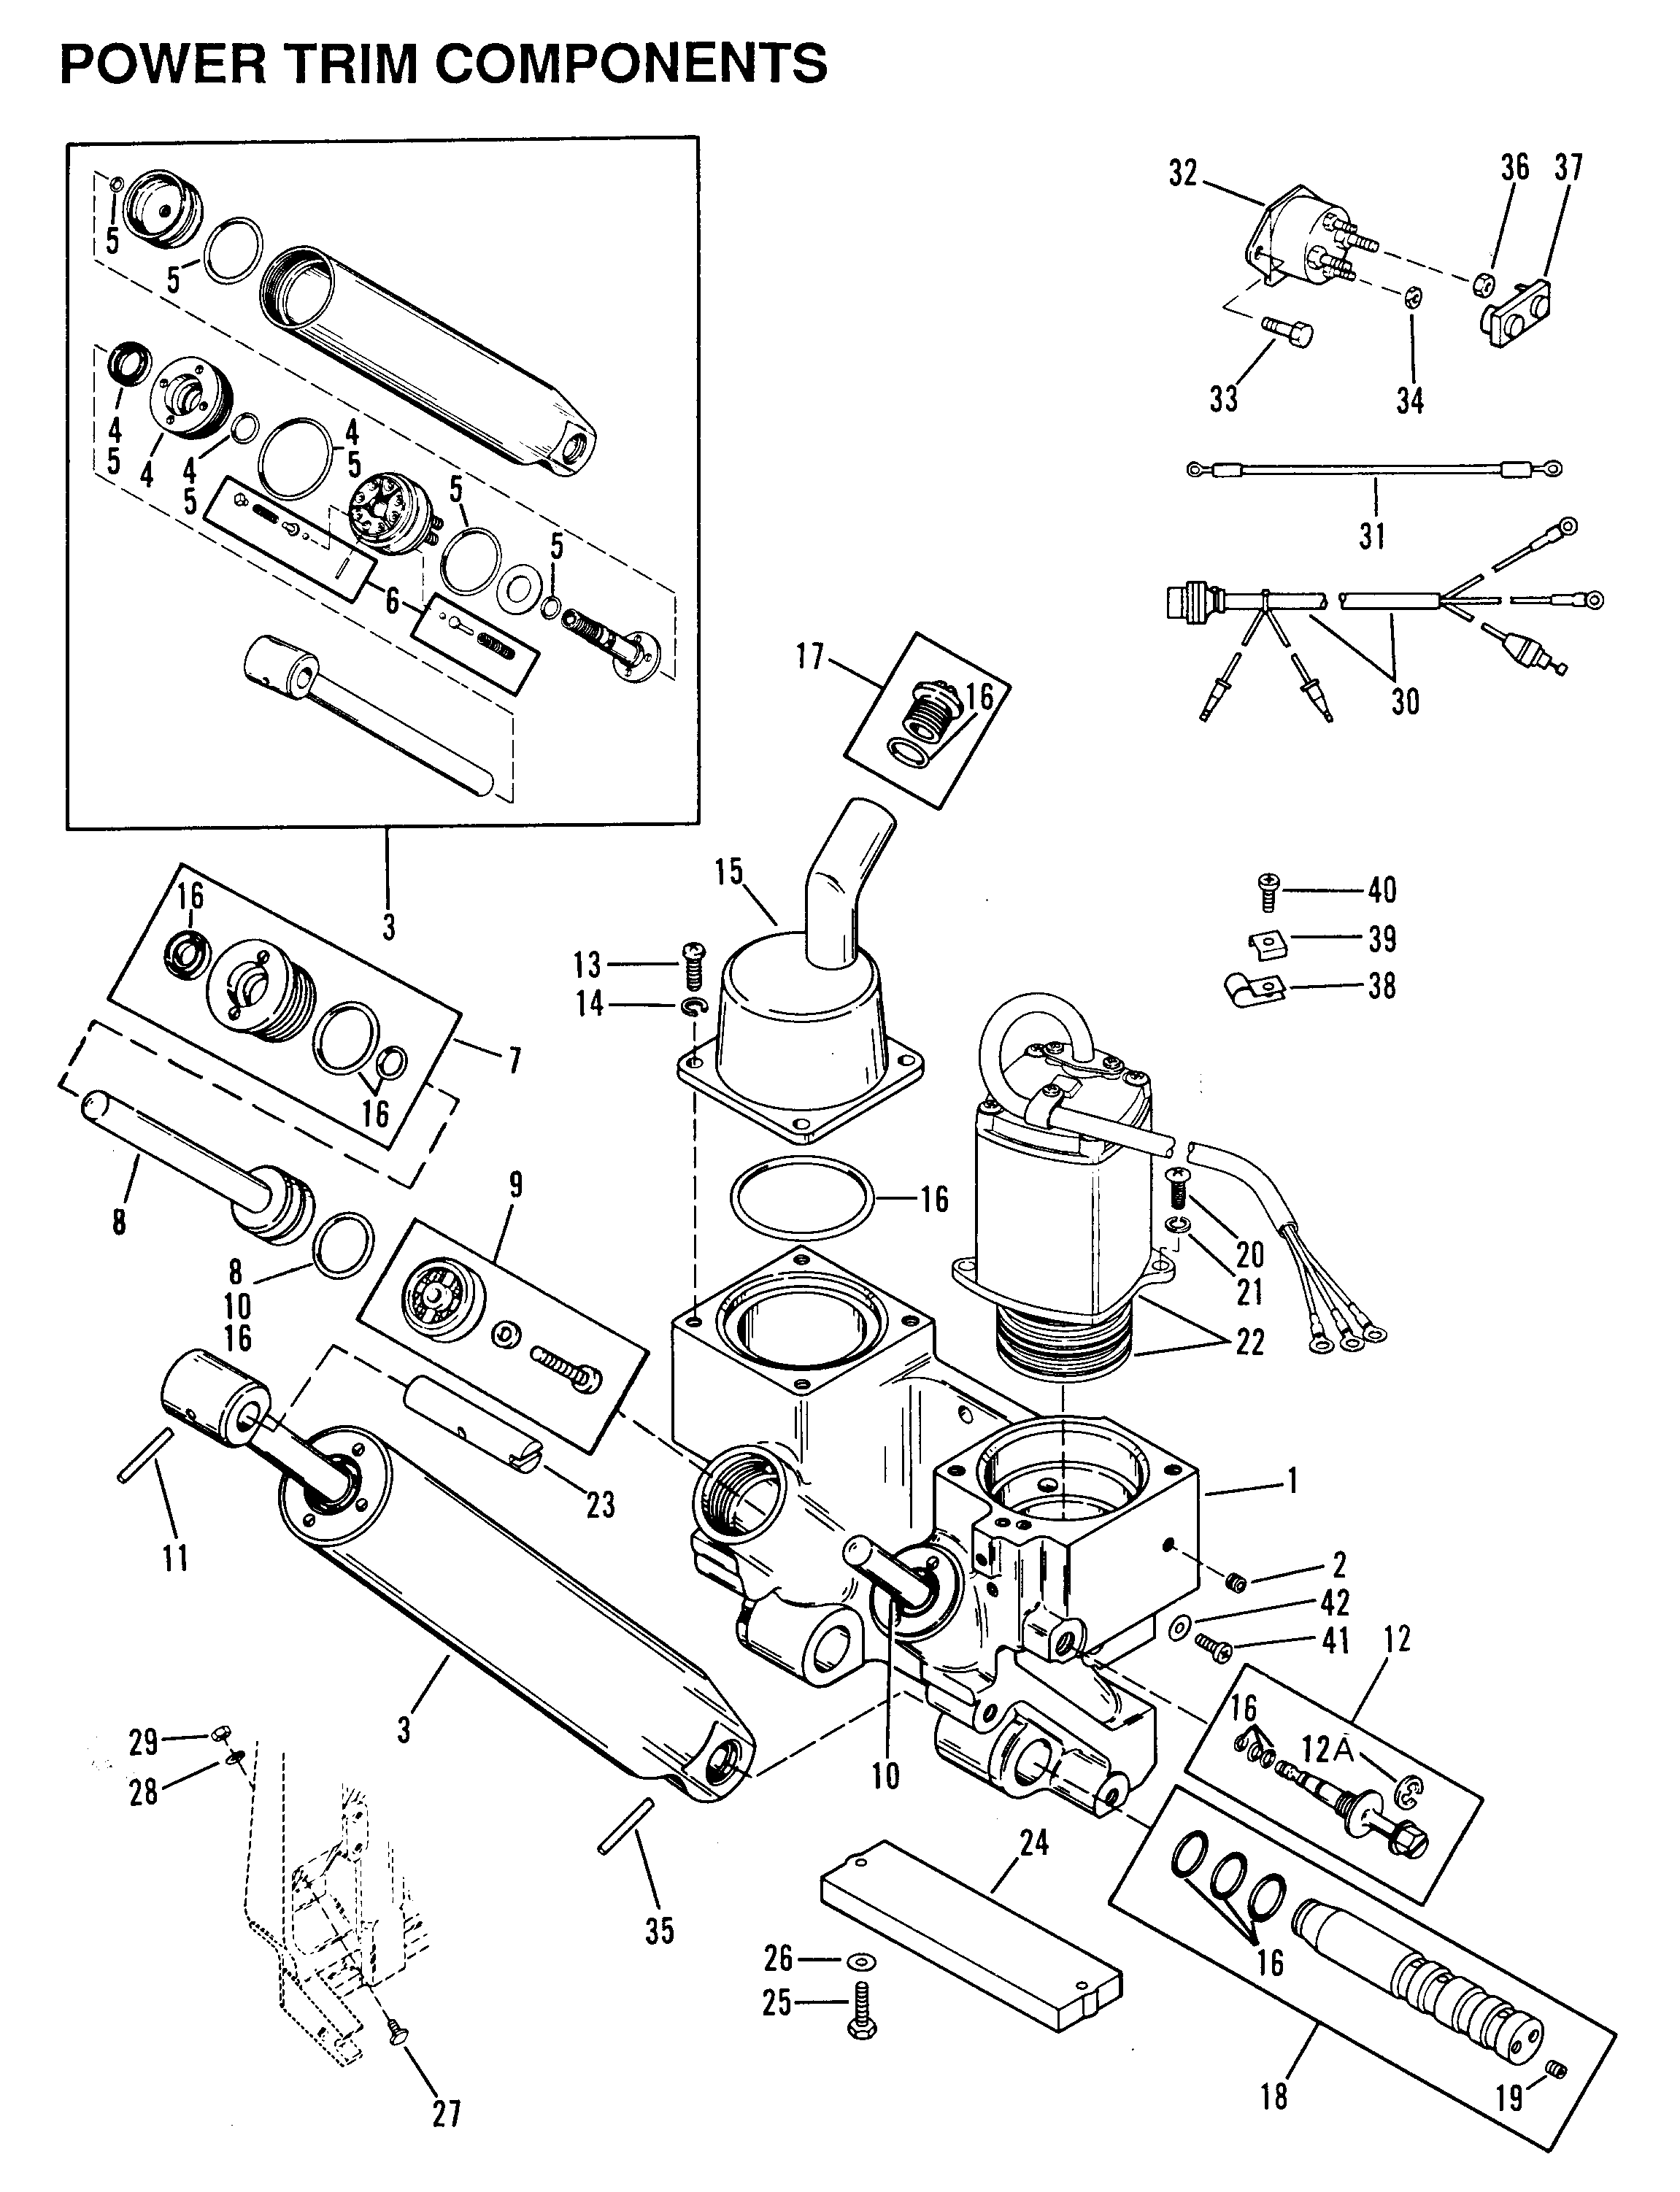 90 Hp Mercury Ignition Switch Wiring Diagram